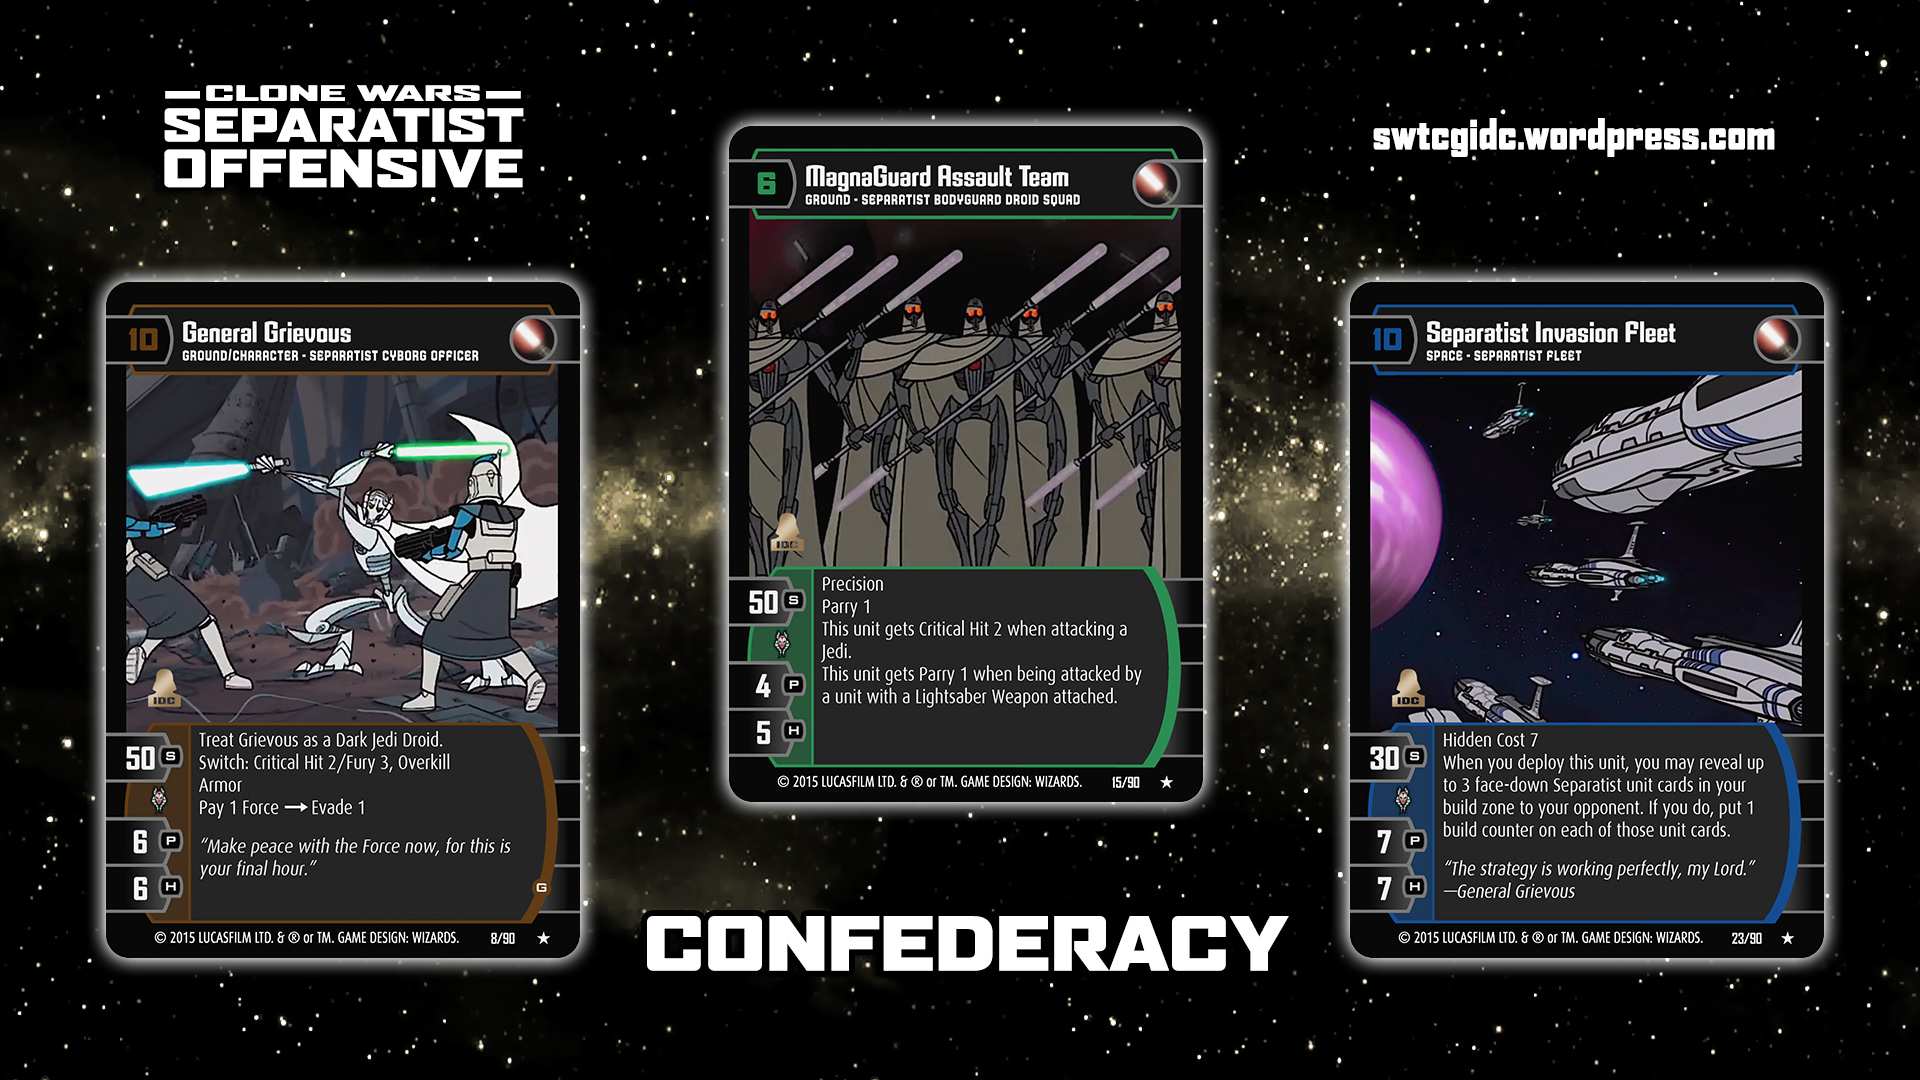 Separatist Offensive Star Wars Trading Card Game Independent Development Committee